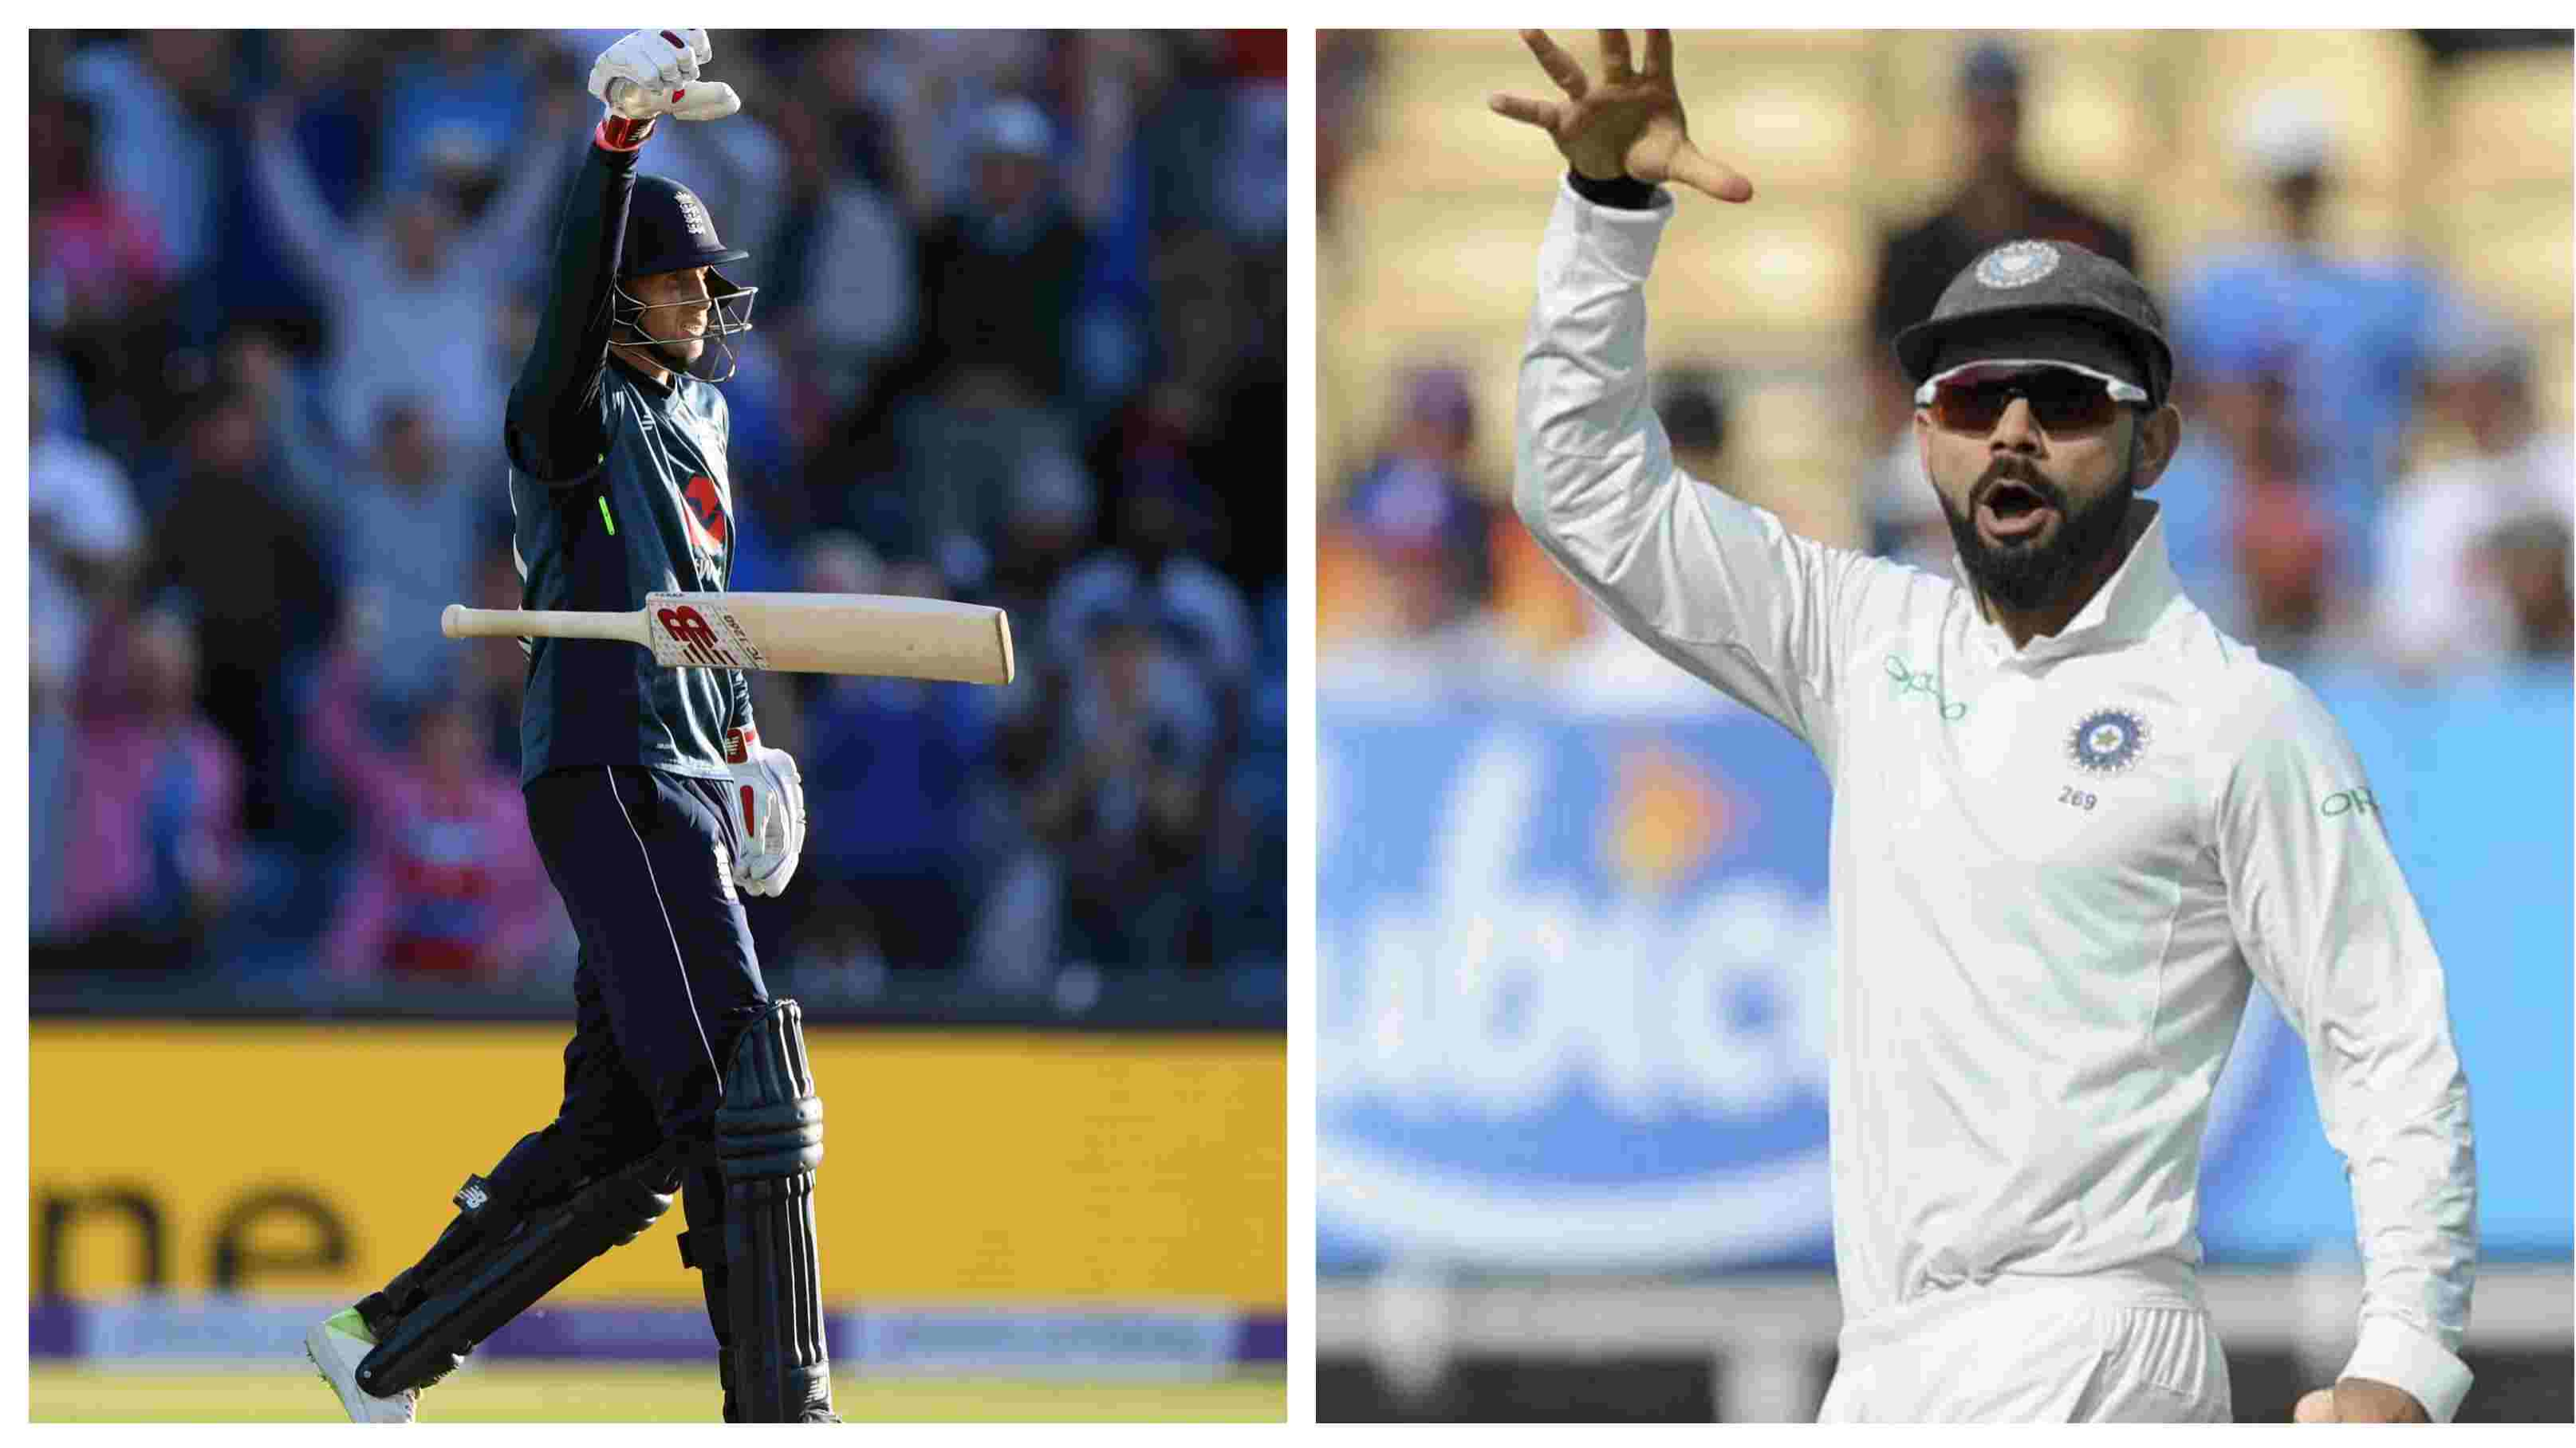 ENG v IND 2018: WATCH – Virat Kohli mocks Joe Root's 'mic-drop' celebration following his dismissal